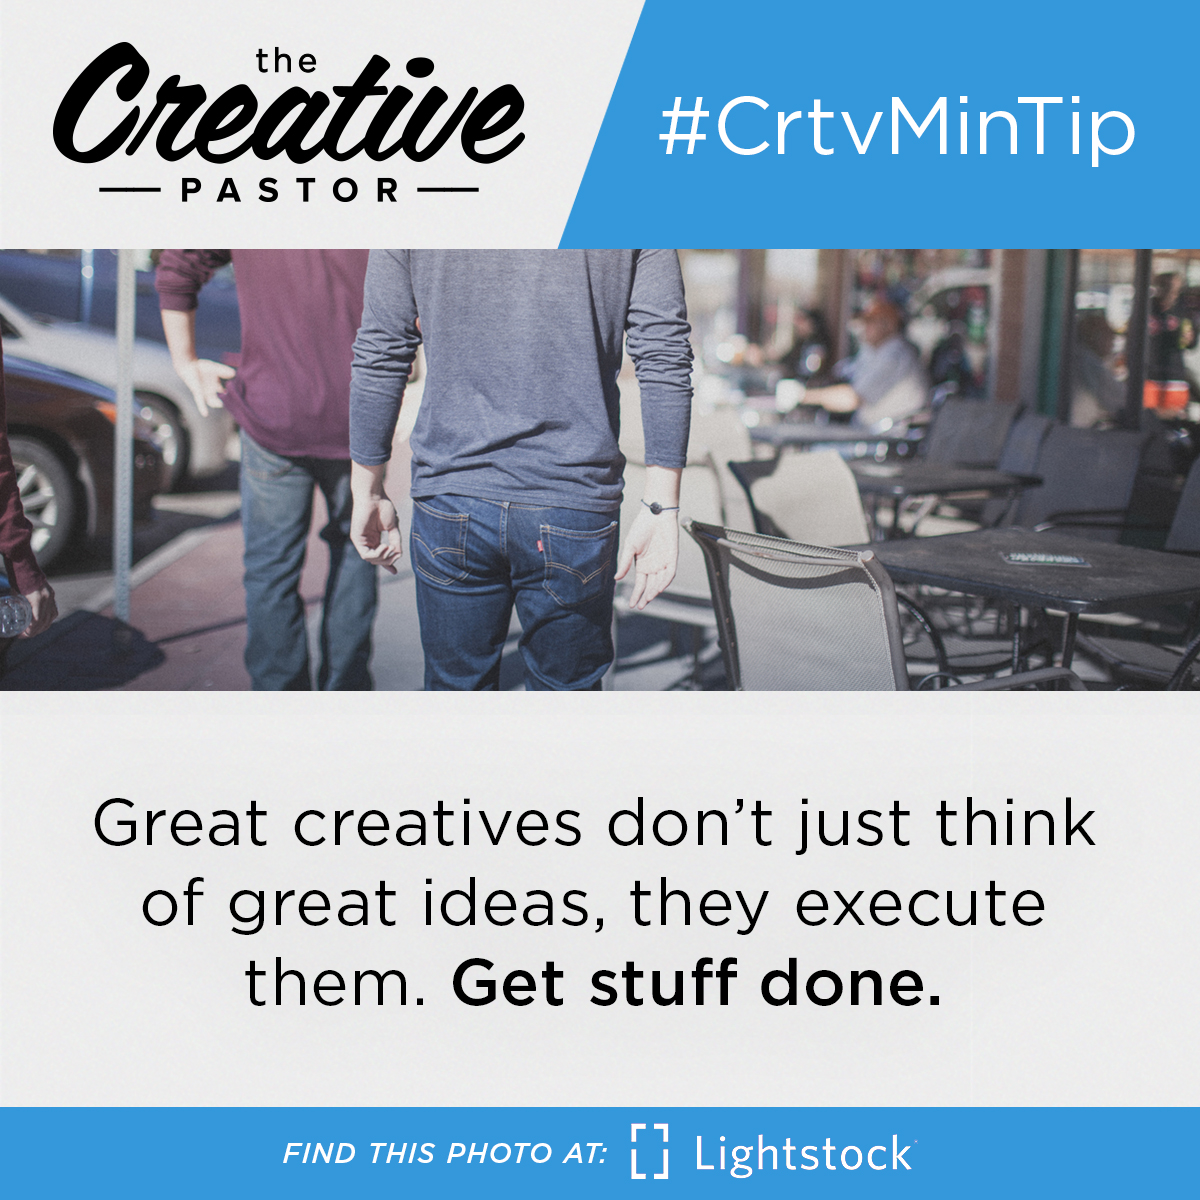 #CrtvMinTip: Great creatives don't just think of great ideas, they execute them. Get stuff done.